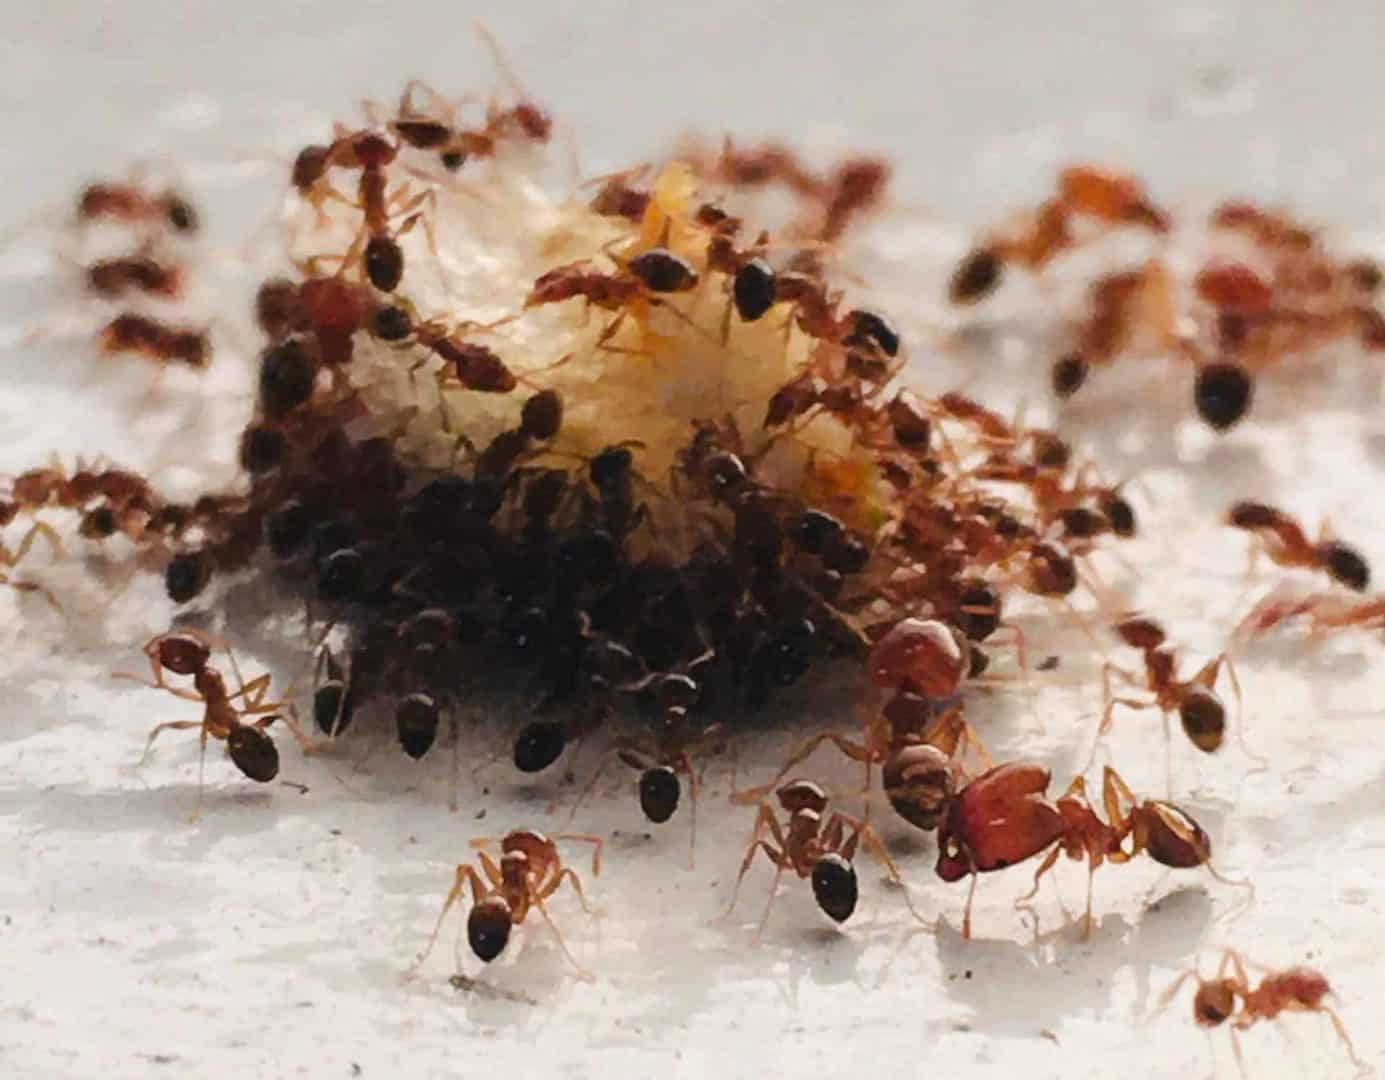 Ants cluster around food. Ant control in restaurants